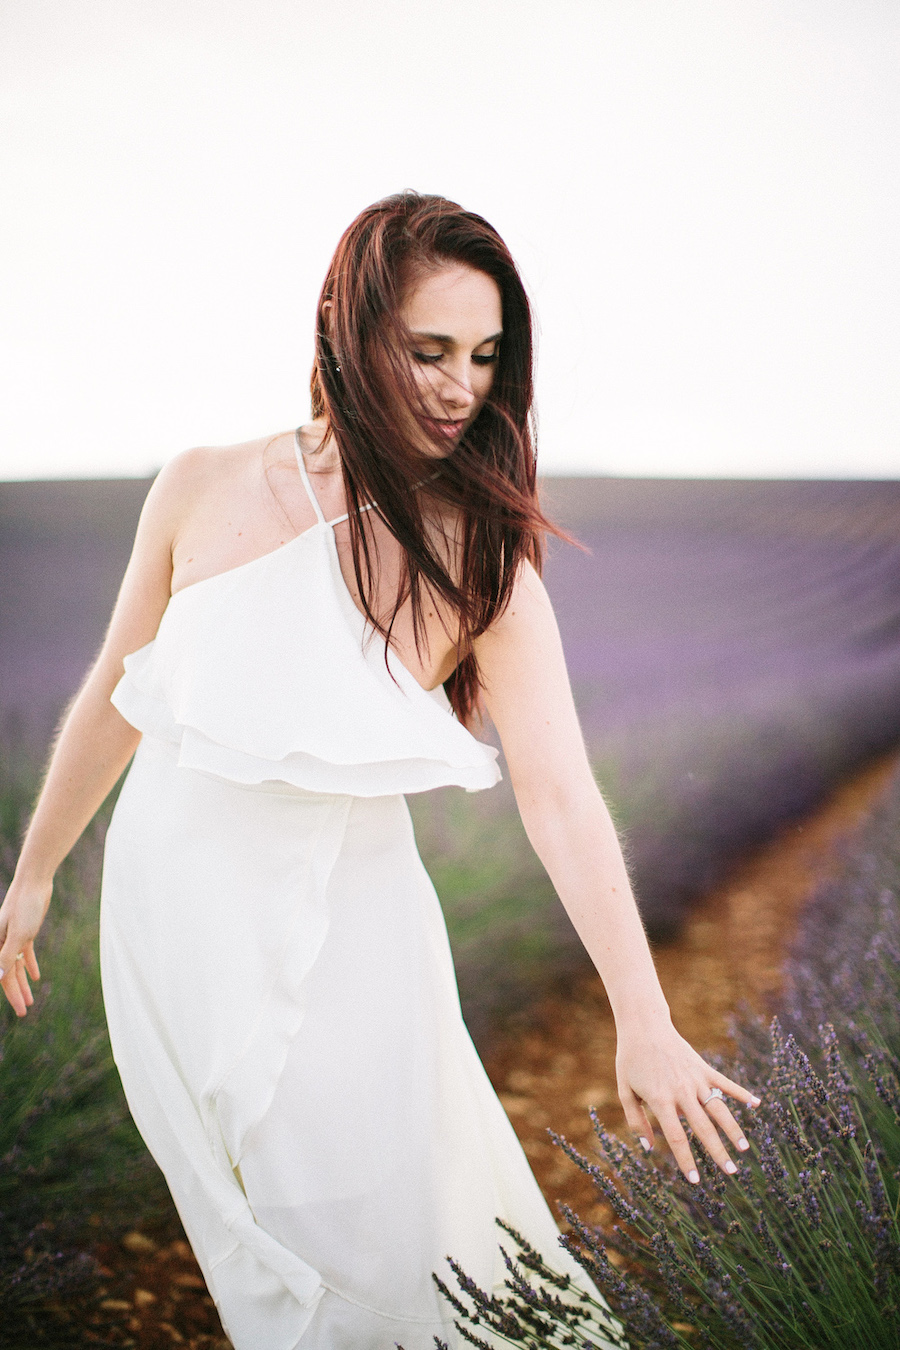 saya-photography-pre-wedding-provence-lavander-field-29.jpg